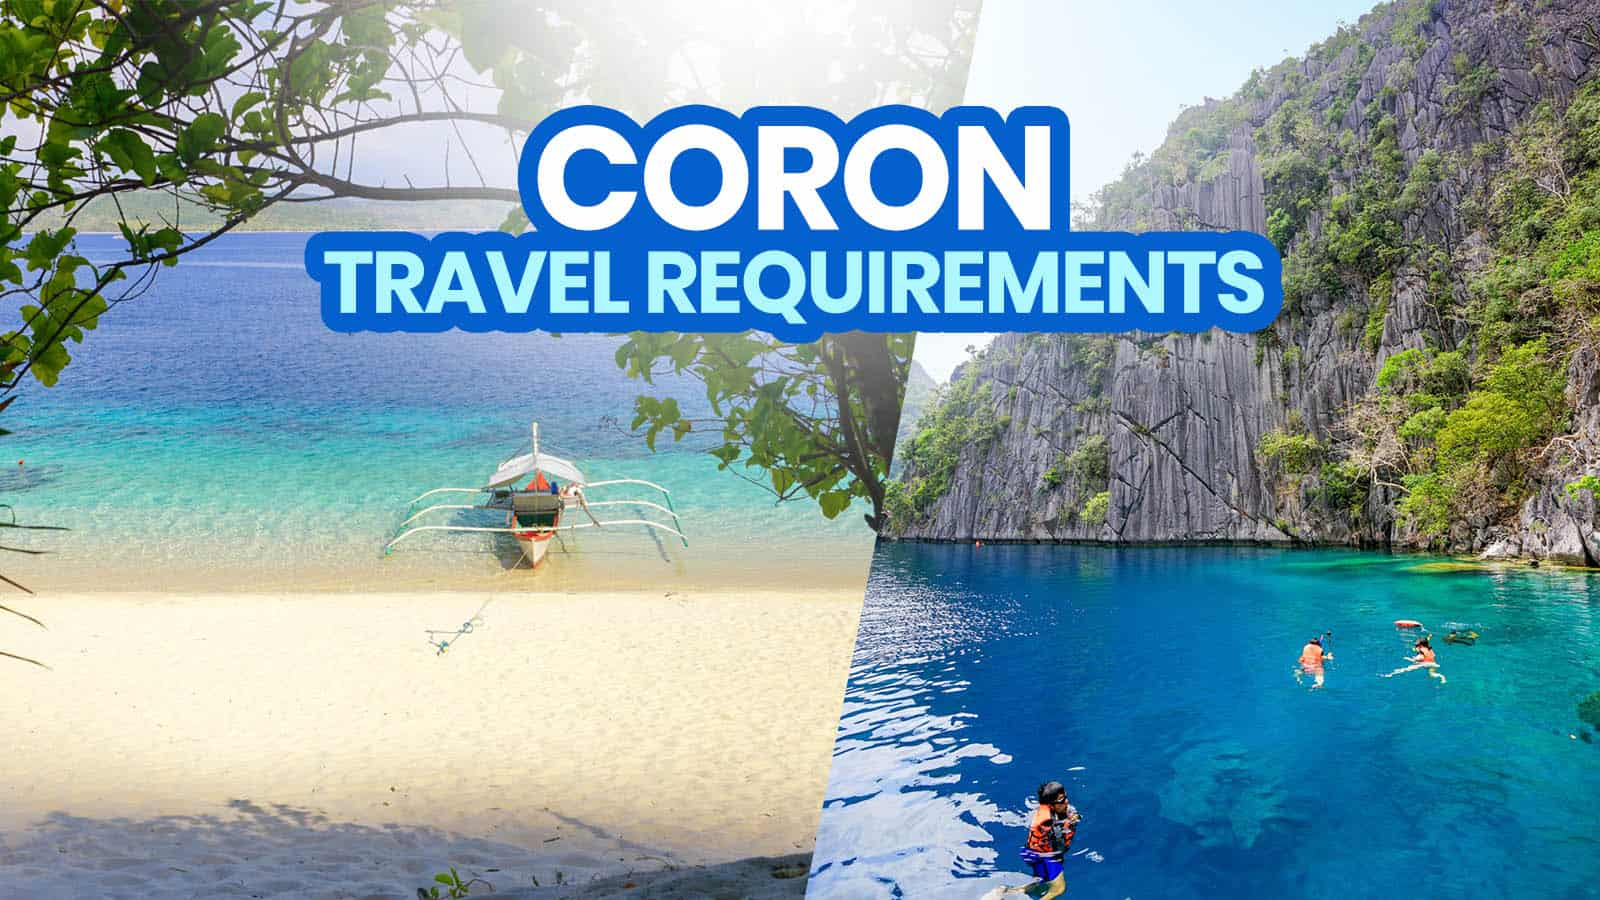 New Normal CORON TRAVEL REQUIREMENTS & Policies